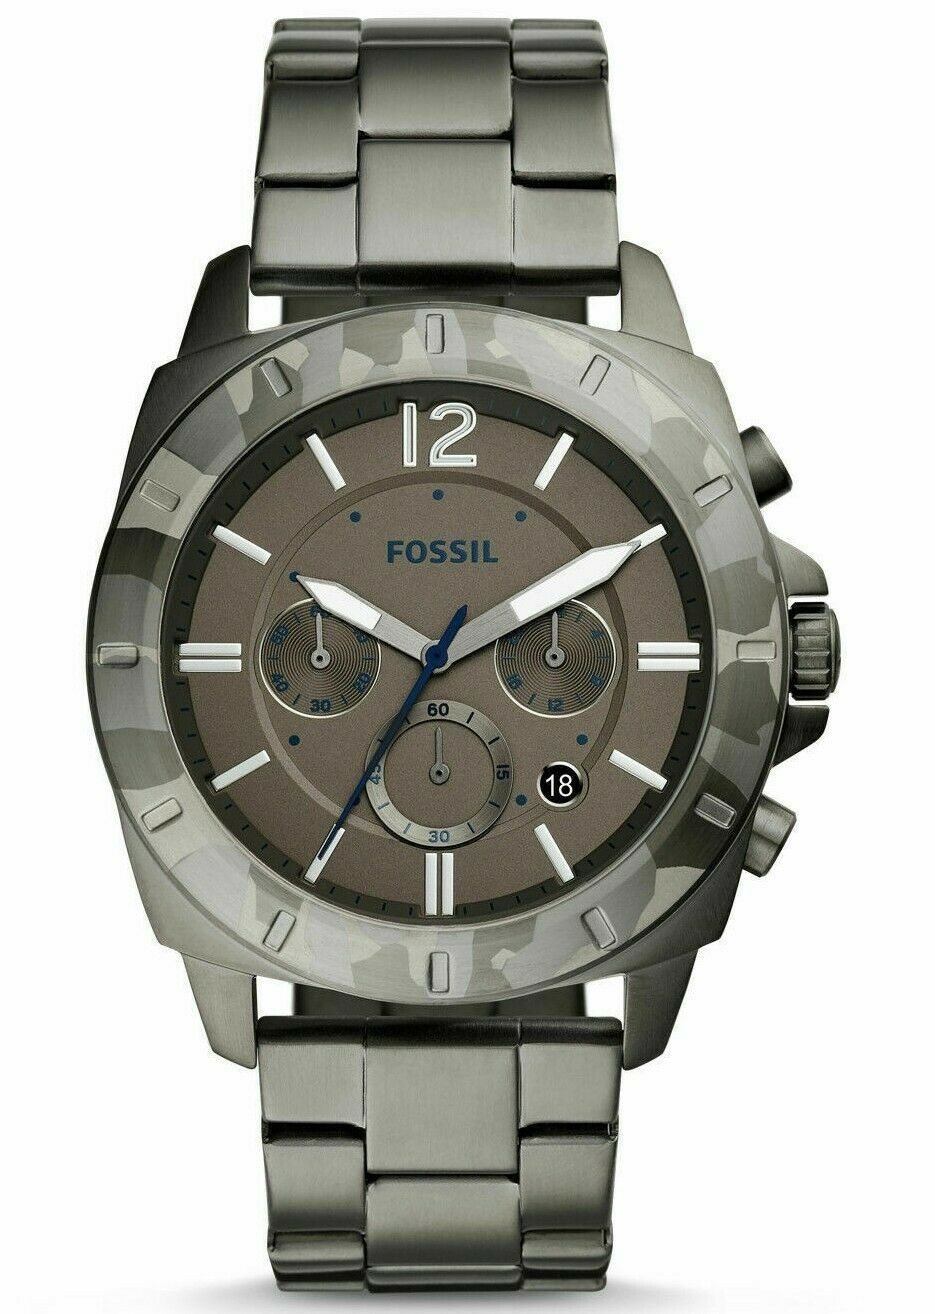 NWT FOSSIL PRIVATEER SPORT SMOKE CHRONOGRAPH STAINLESS STEEL 45mm WATCH BQ2345